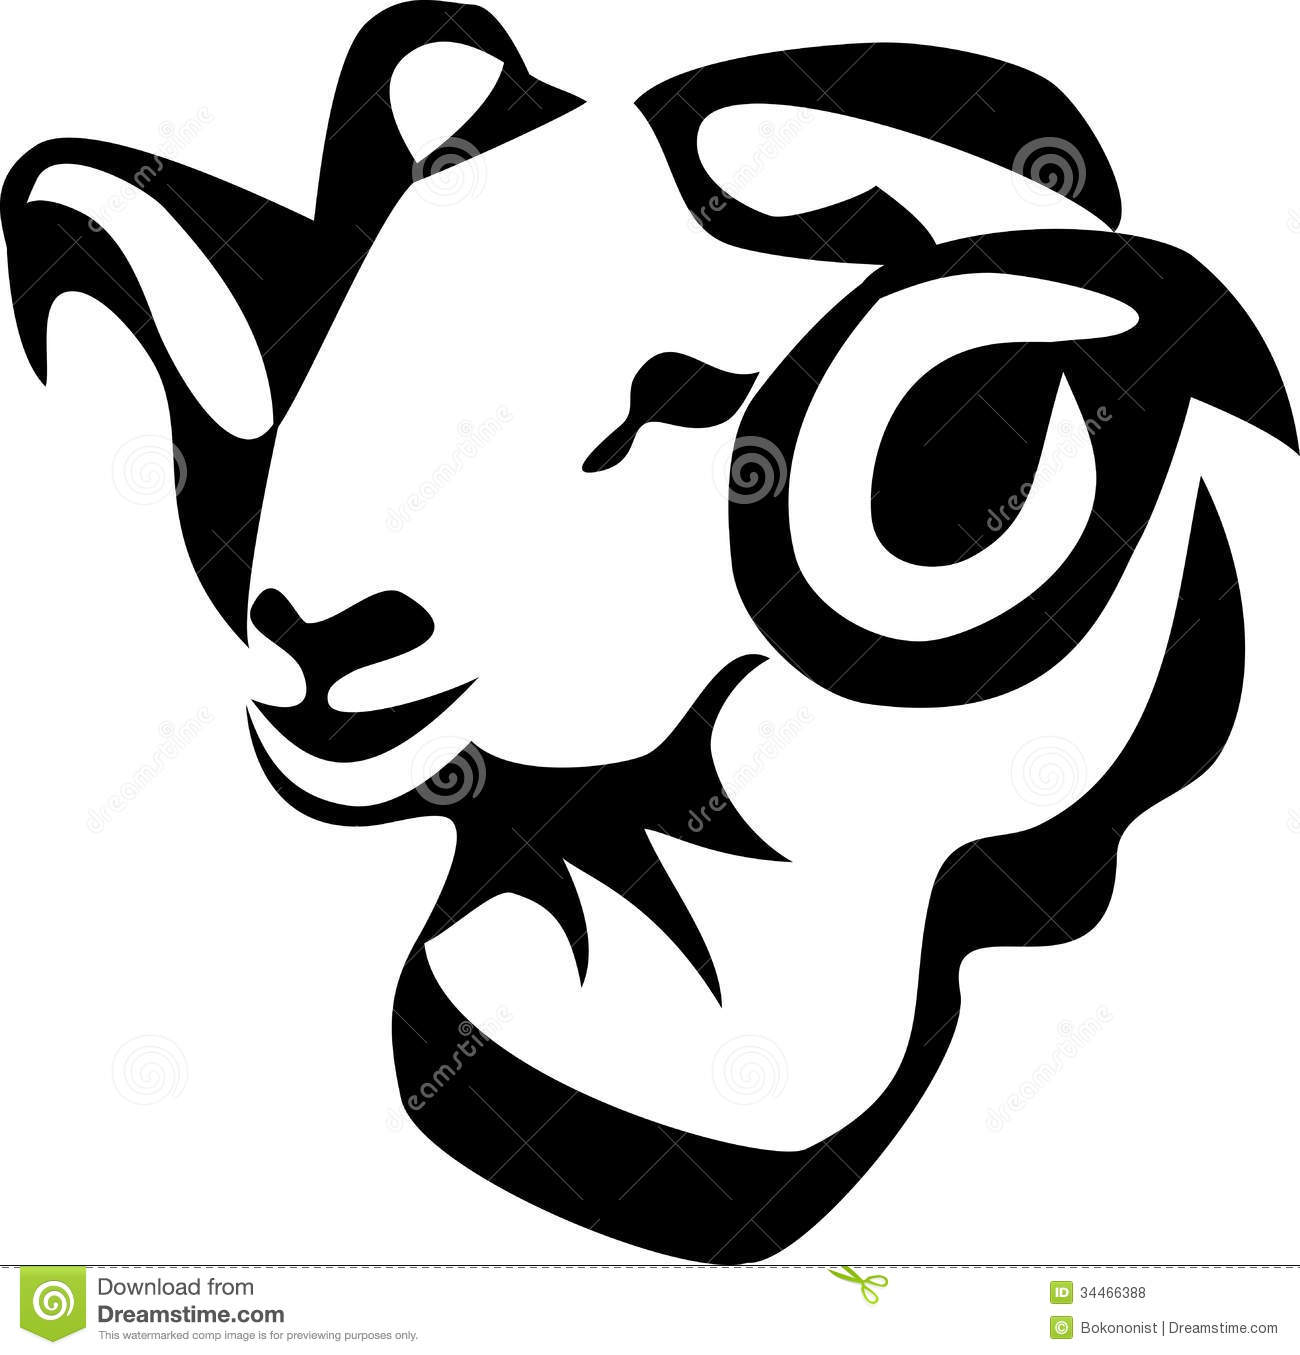 Artistic ram head clipart black and white graphic royalty free Ram head clip art - ClipartFest graphic royalty free